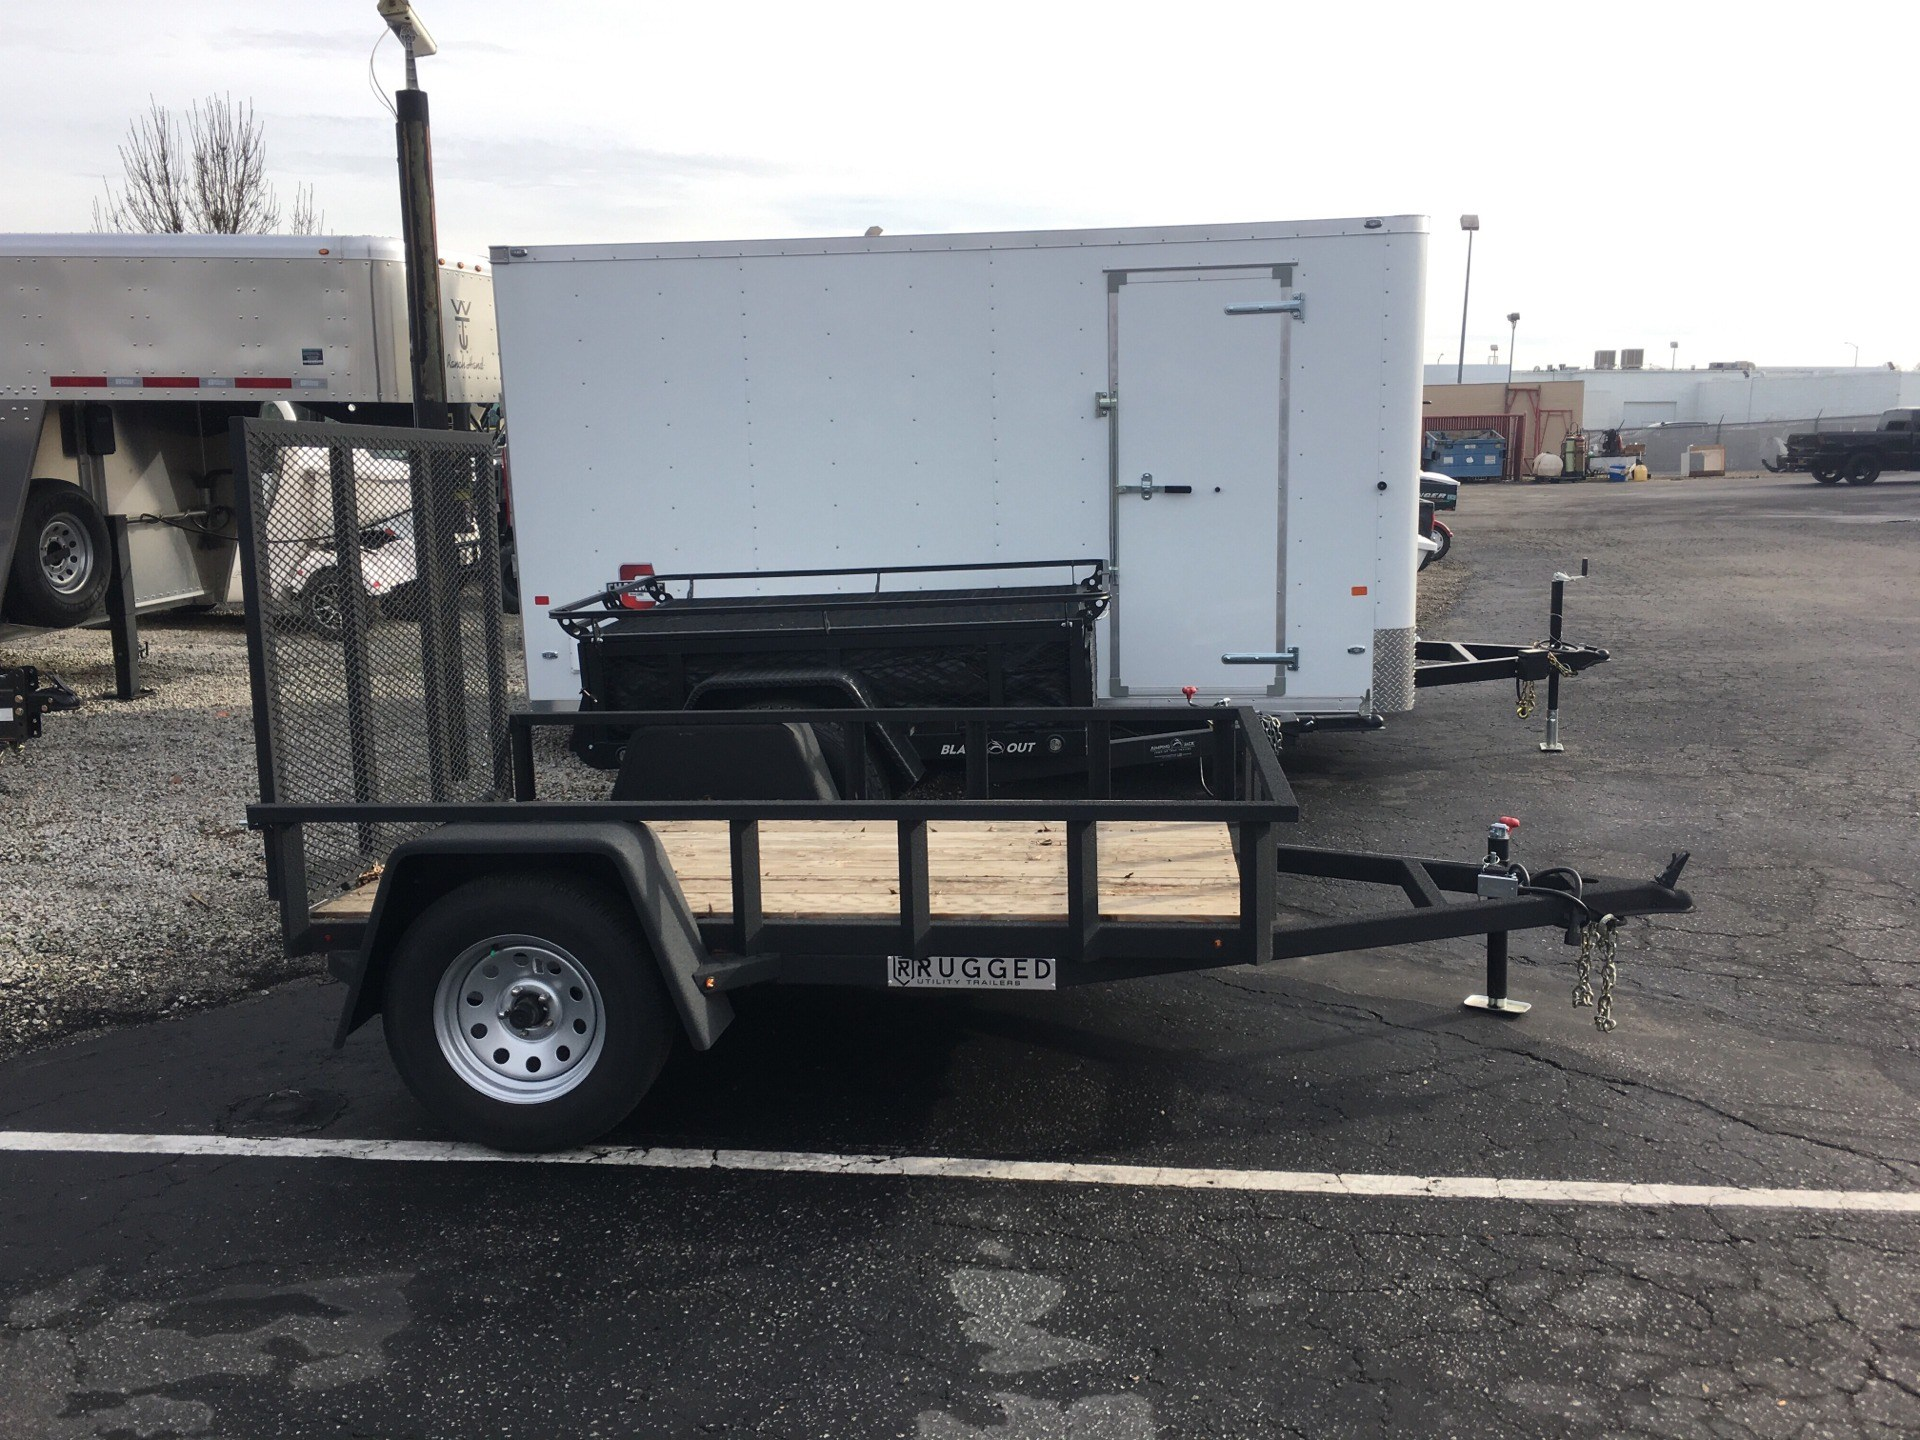 2018 Charmac Trailers 8' X 5' RUGGED STEEL UTILITY TRAILER in Paso Robles, California